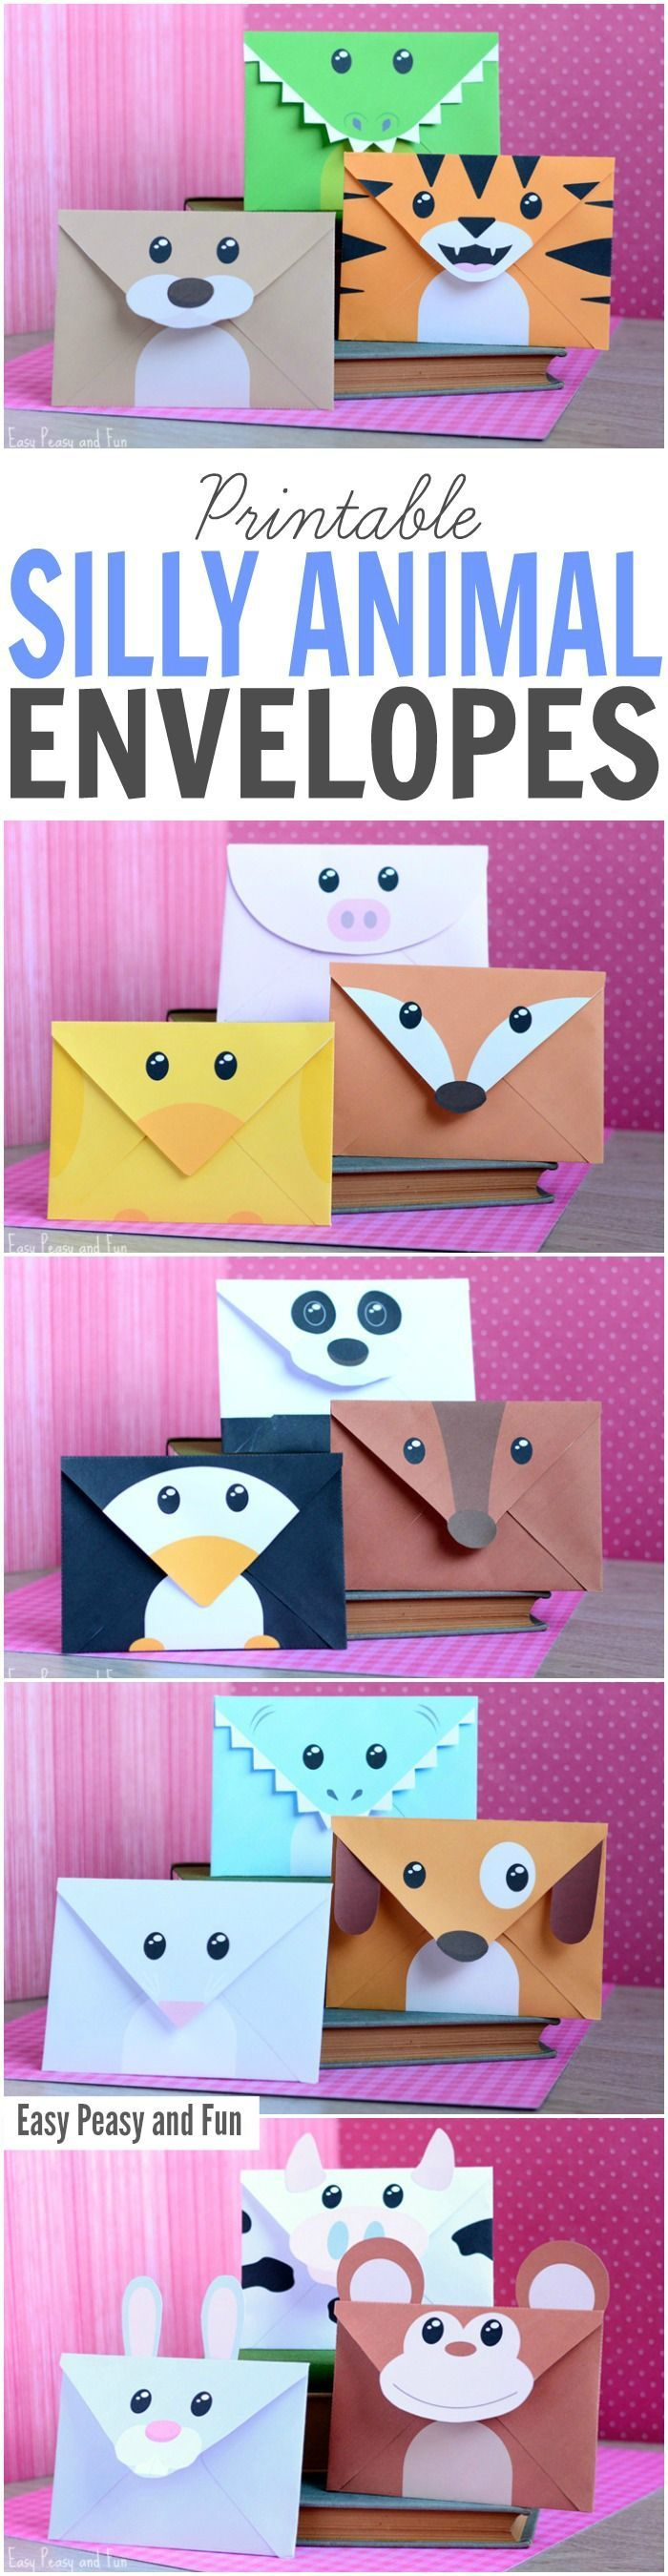 Printable Silly Animals Envelopes - Easy Peasy and Fun